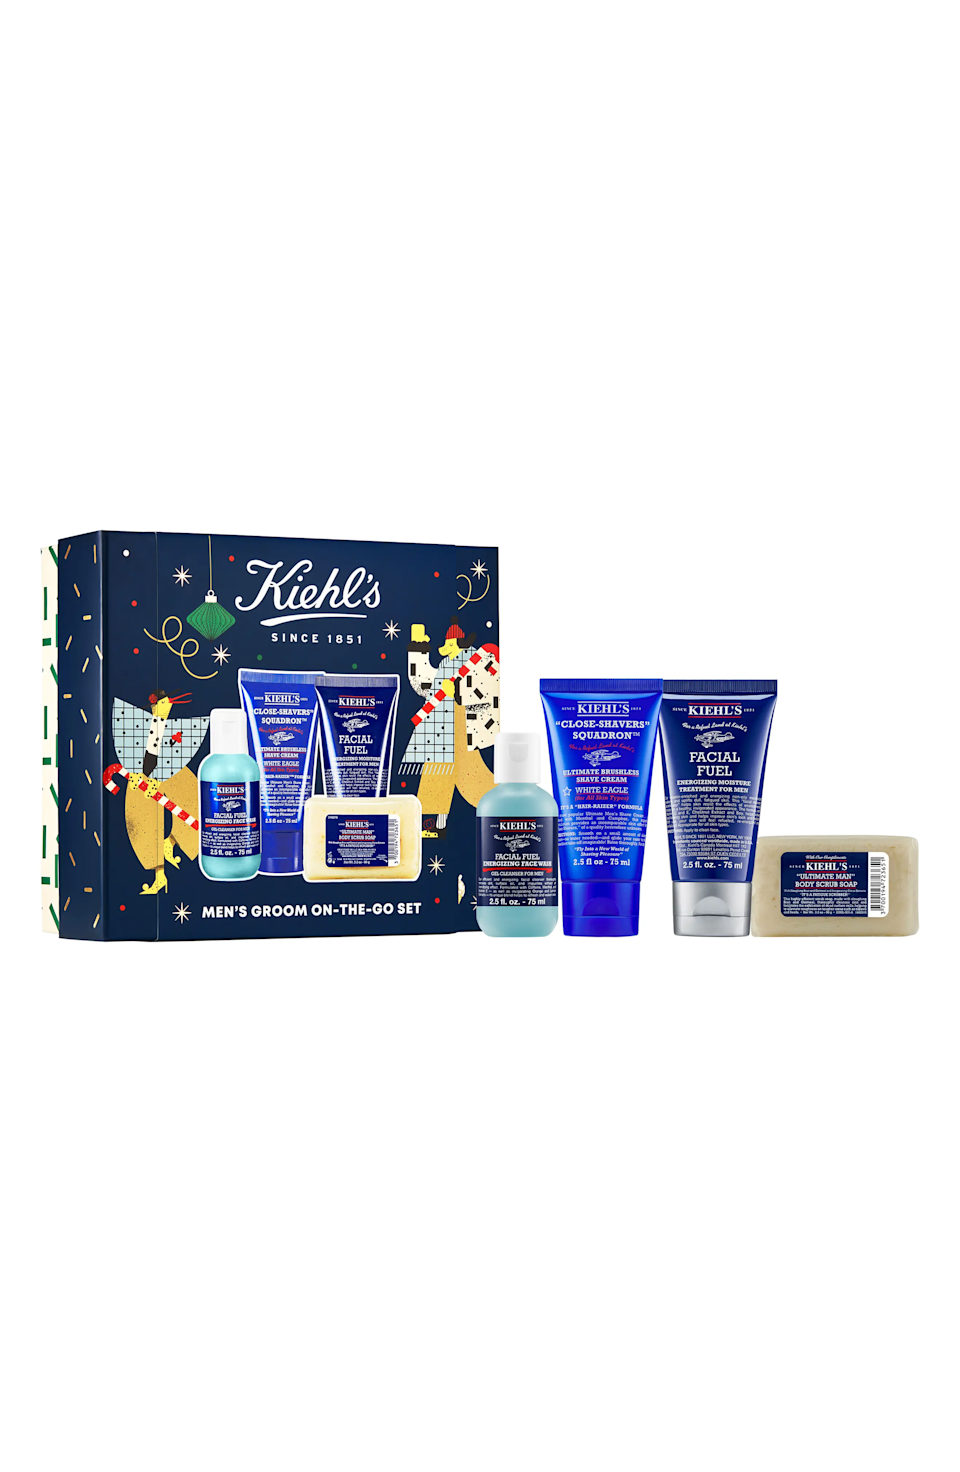 """<h3><strong><a href=""""https://www.nordstrom.com/s/kiehls-since-1851-mens-groom-on-the-go-set-usd-55-value/5749009"""" rel=""""nofollow noopener"""" target=""""_blank"""" data-ylk=""""slk:Kiehl's"""" class=""""link rapid-noclick-resp"""">Kiehl's</a></strong><a href=""""https://www.nordstrom.com/s/kiehls-since-1851-mens-groom-on-the-go-set-usd-55-value/5749009"""" rel=""""nofollow noopener"""" target=""""_blank"""" data-ylk=""""slk:Men's Groom-On-The-Go Set"""" class=""""link rapid-noclick-resp""""> Men's Groom-On-The-Go Set</a></h3><br>If your hubs hasn't washed his face with anything other than lukewarm water and a bar of soap from the shower in a decade, then giving him the gift of Kiehl's is the move. Snag this skin-care starter kit, which includes not just a face wash, but body scrub soap, shave cream, and moisturizer.<br><br><strong>Kiehl's Since 1851</strong> Men's Groom-On-The-Go Set, $, available at <a href=""""https://go.skimresources.com/?id=30283X879131&url=https%3A%2F%2Fwww.nordstrom.com%2Fs%2Fkiehls-since-1851-mens-groom-on-the-go-set-usd-55-value%2F5749009"""" rel=""""nofollow noopener"""" target=""""_blank"""" data-ylk=""""slk:Nordstrom"""" class=""""link rapid-noclick-resp"""">Nordstrom</a>"""